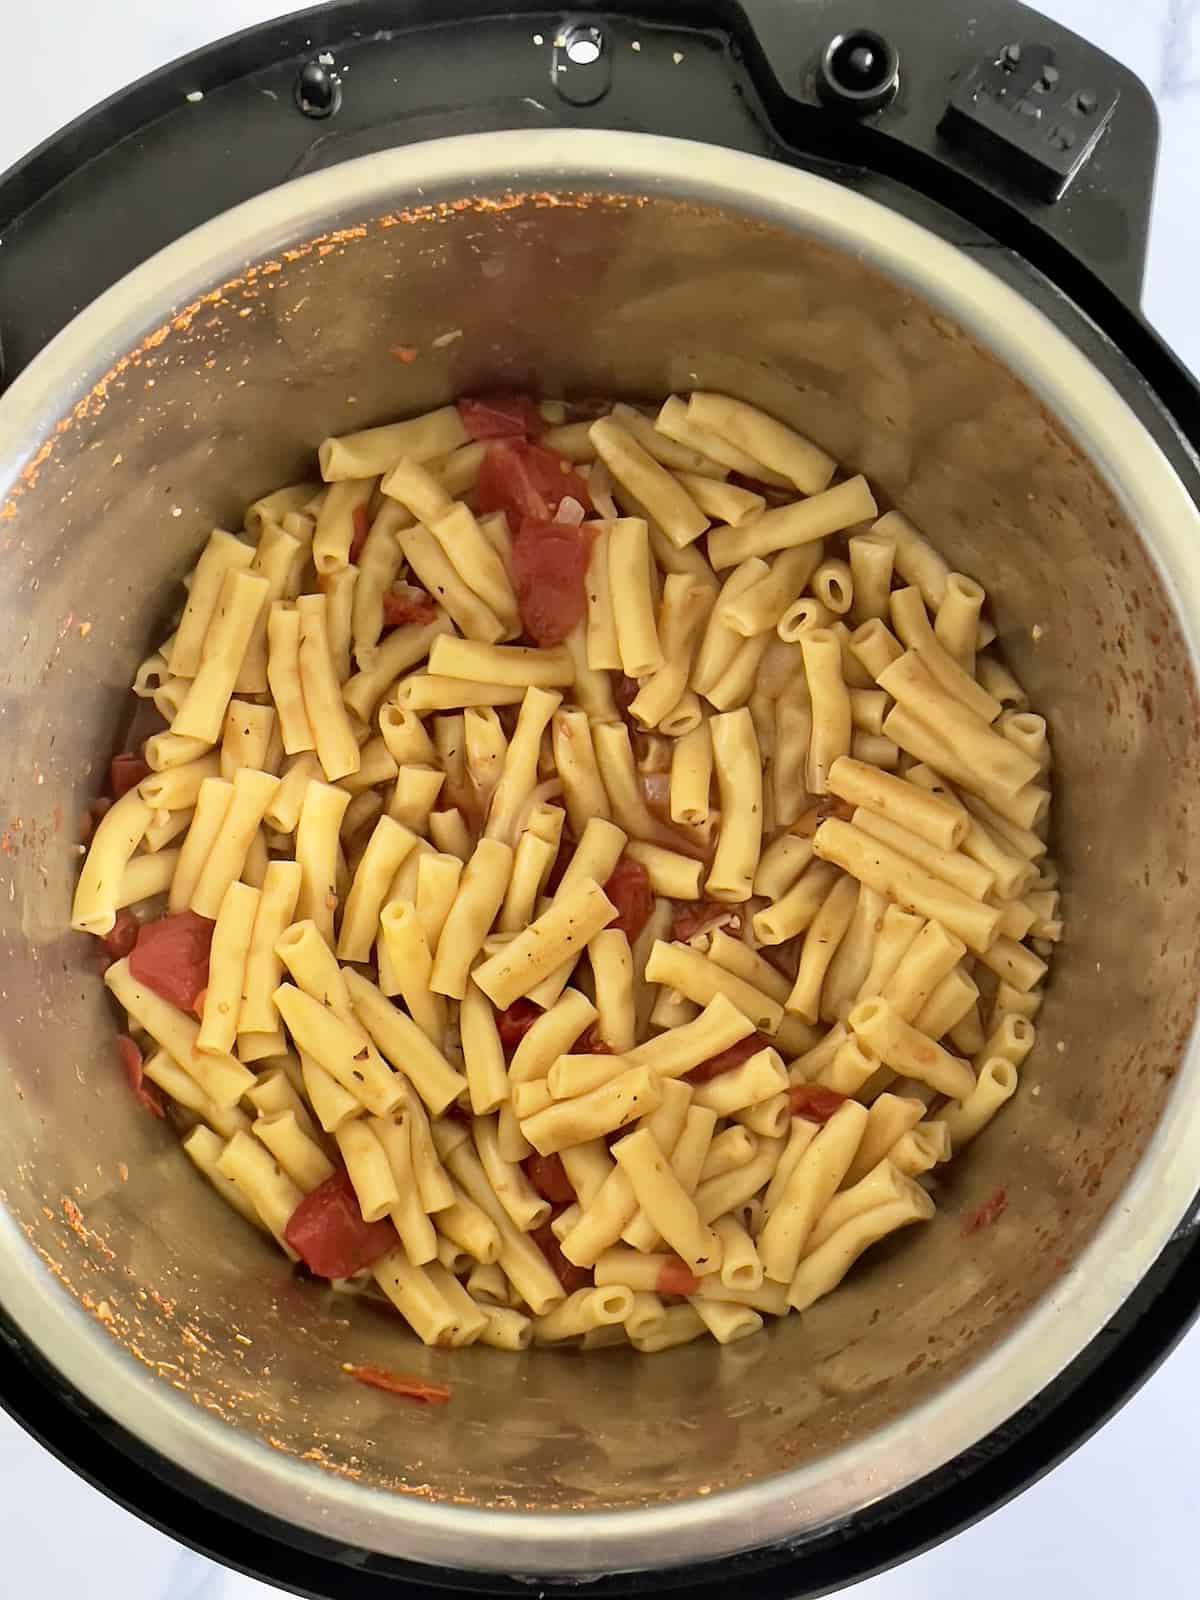 cooked pasta and tomatoes in the inner pot